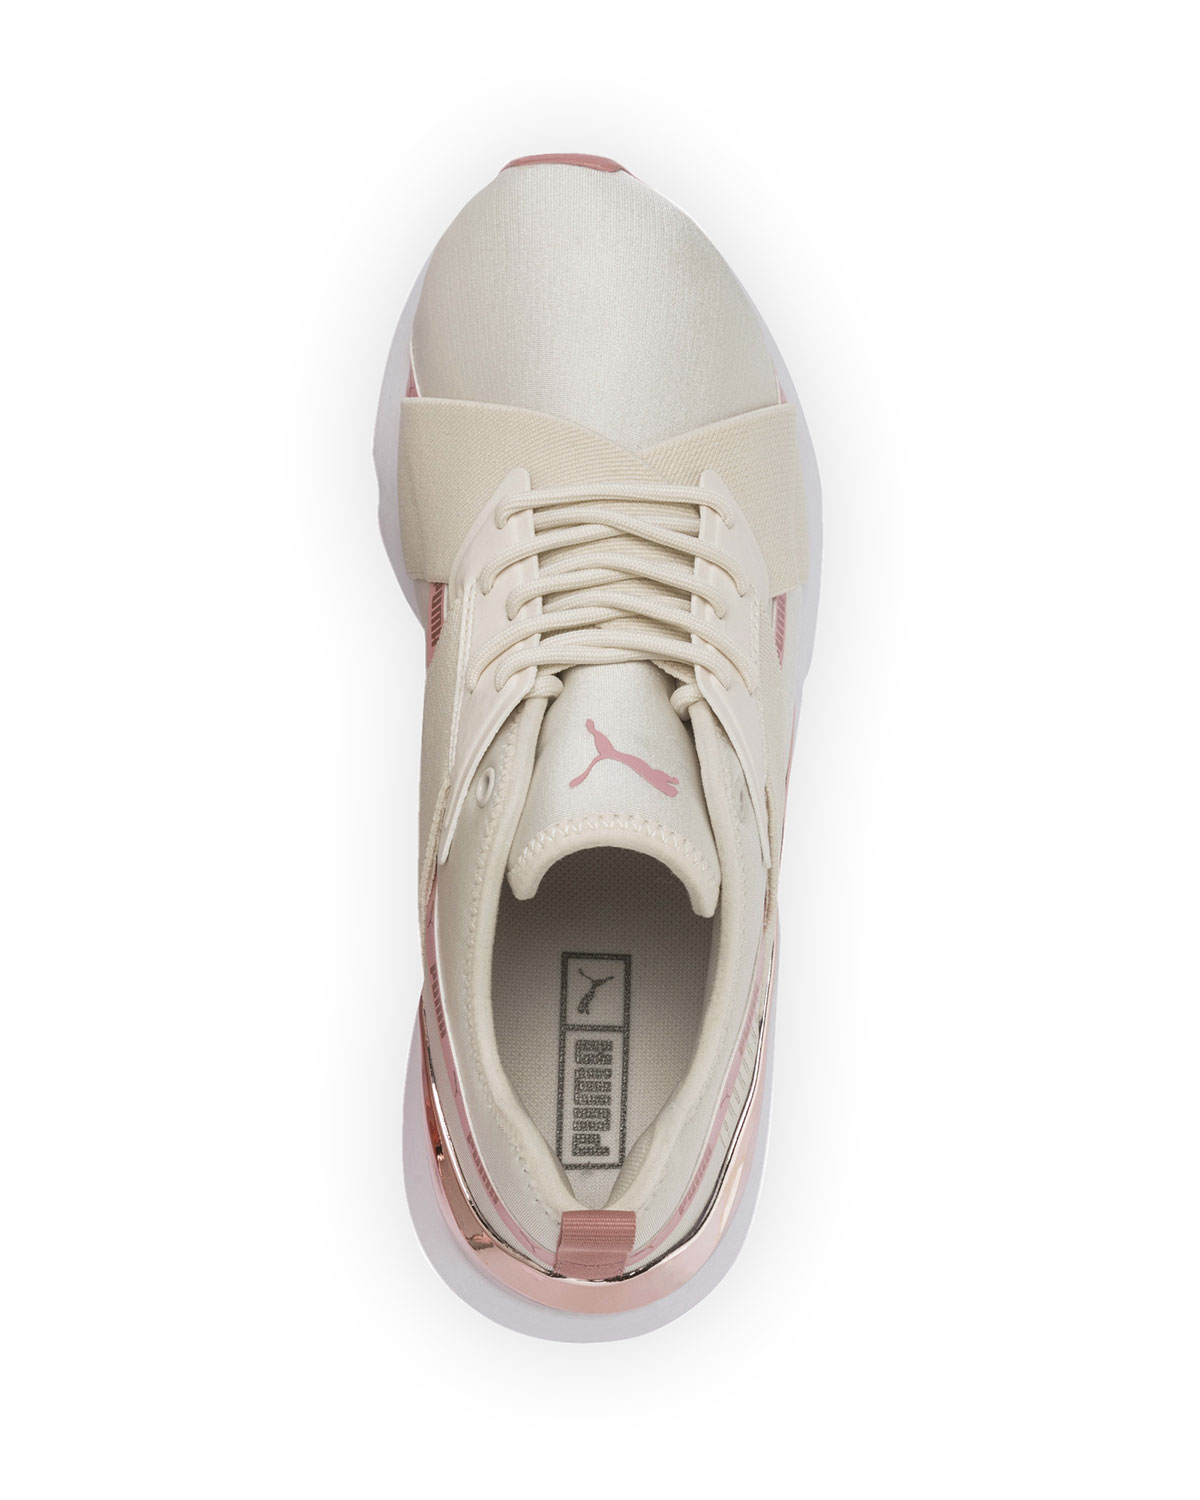 Muse Metallic Lace Up Sneakers by Puma